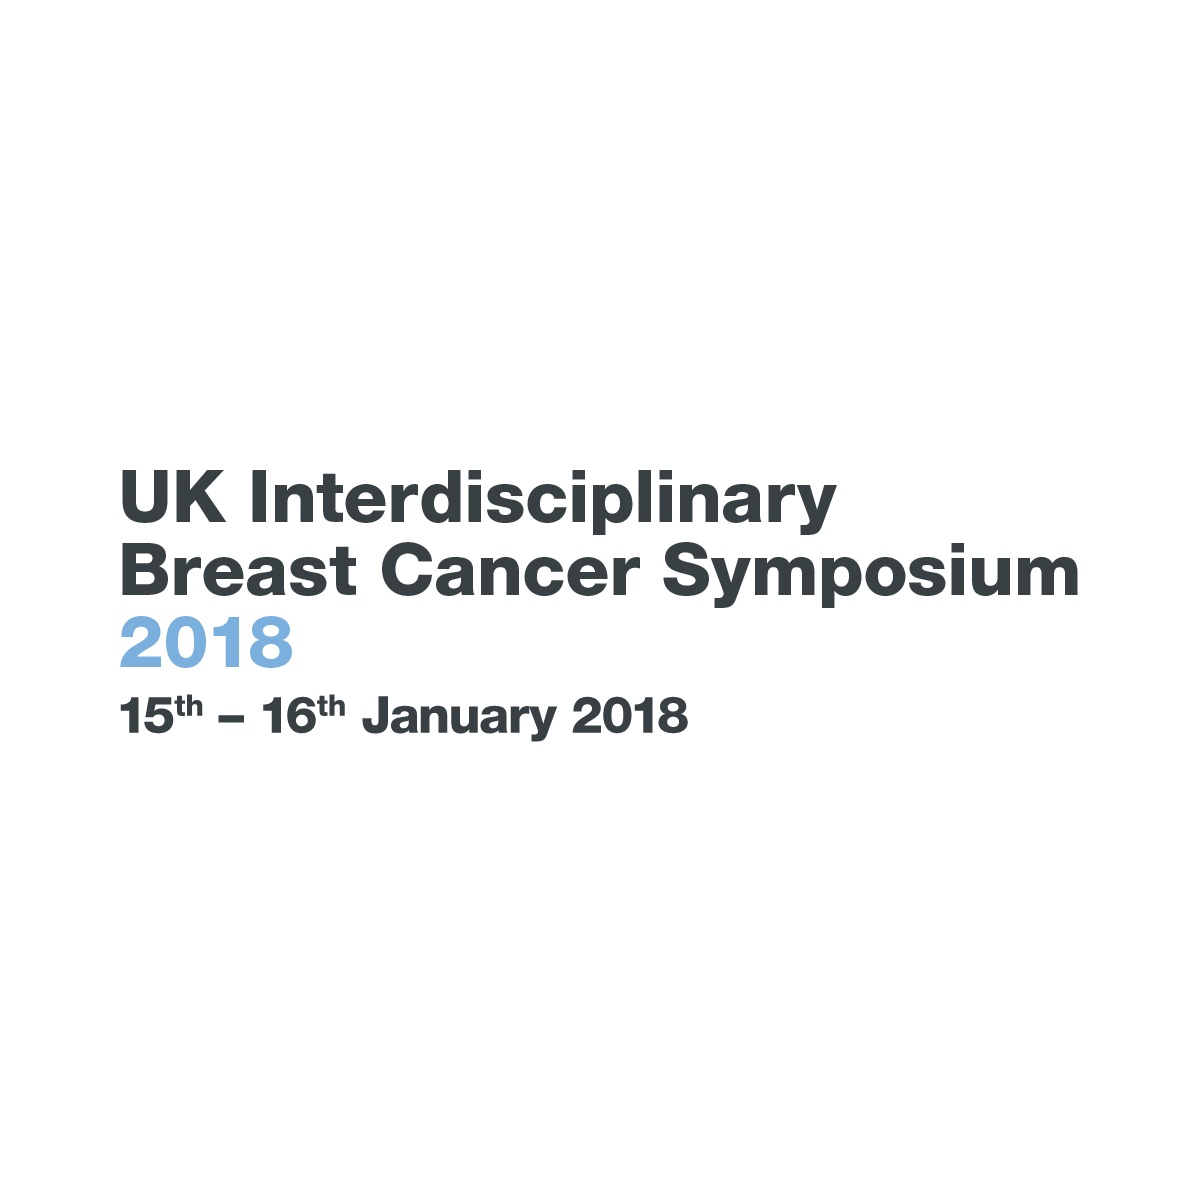 1st UK Interdisciplinary Breast Cancer Symposium – 2018